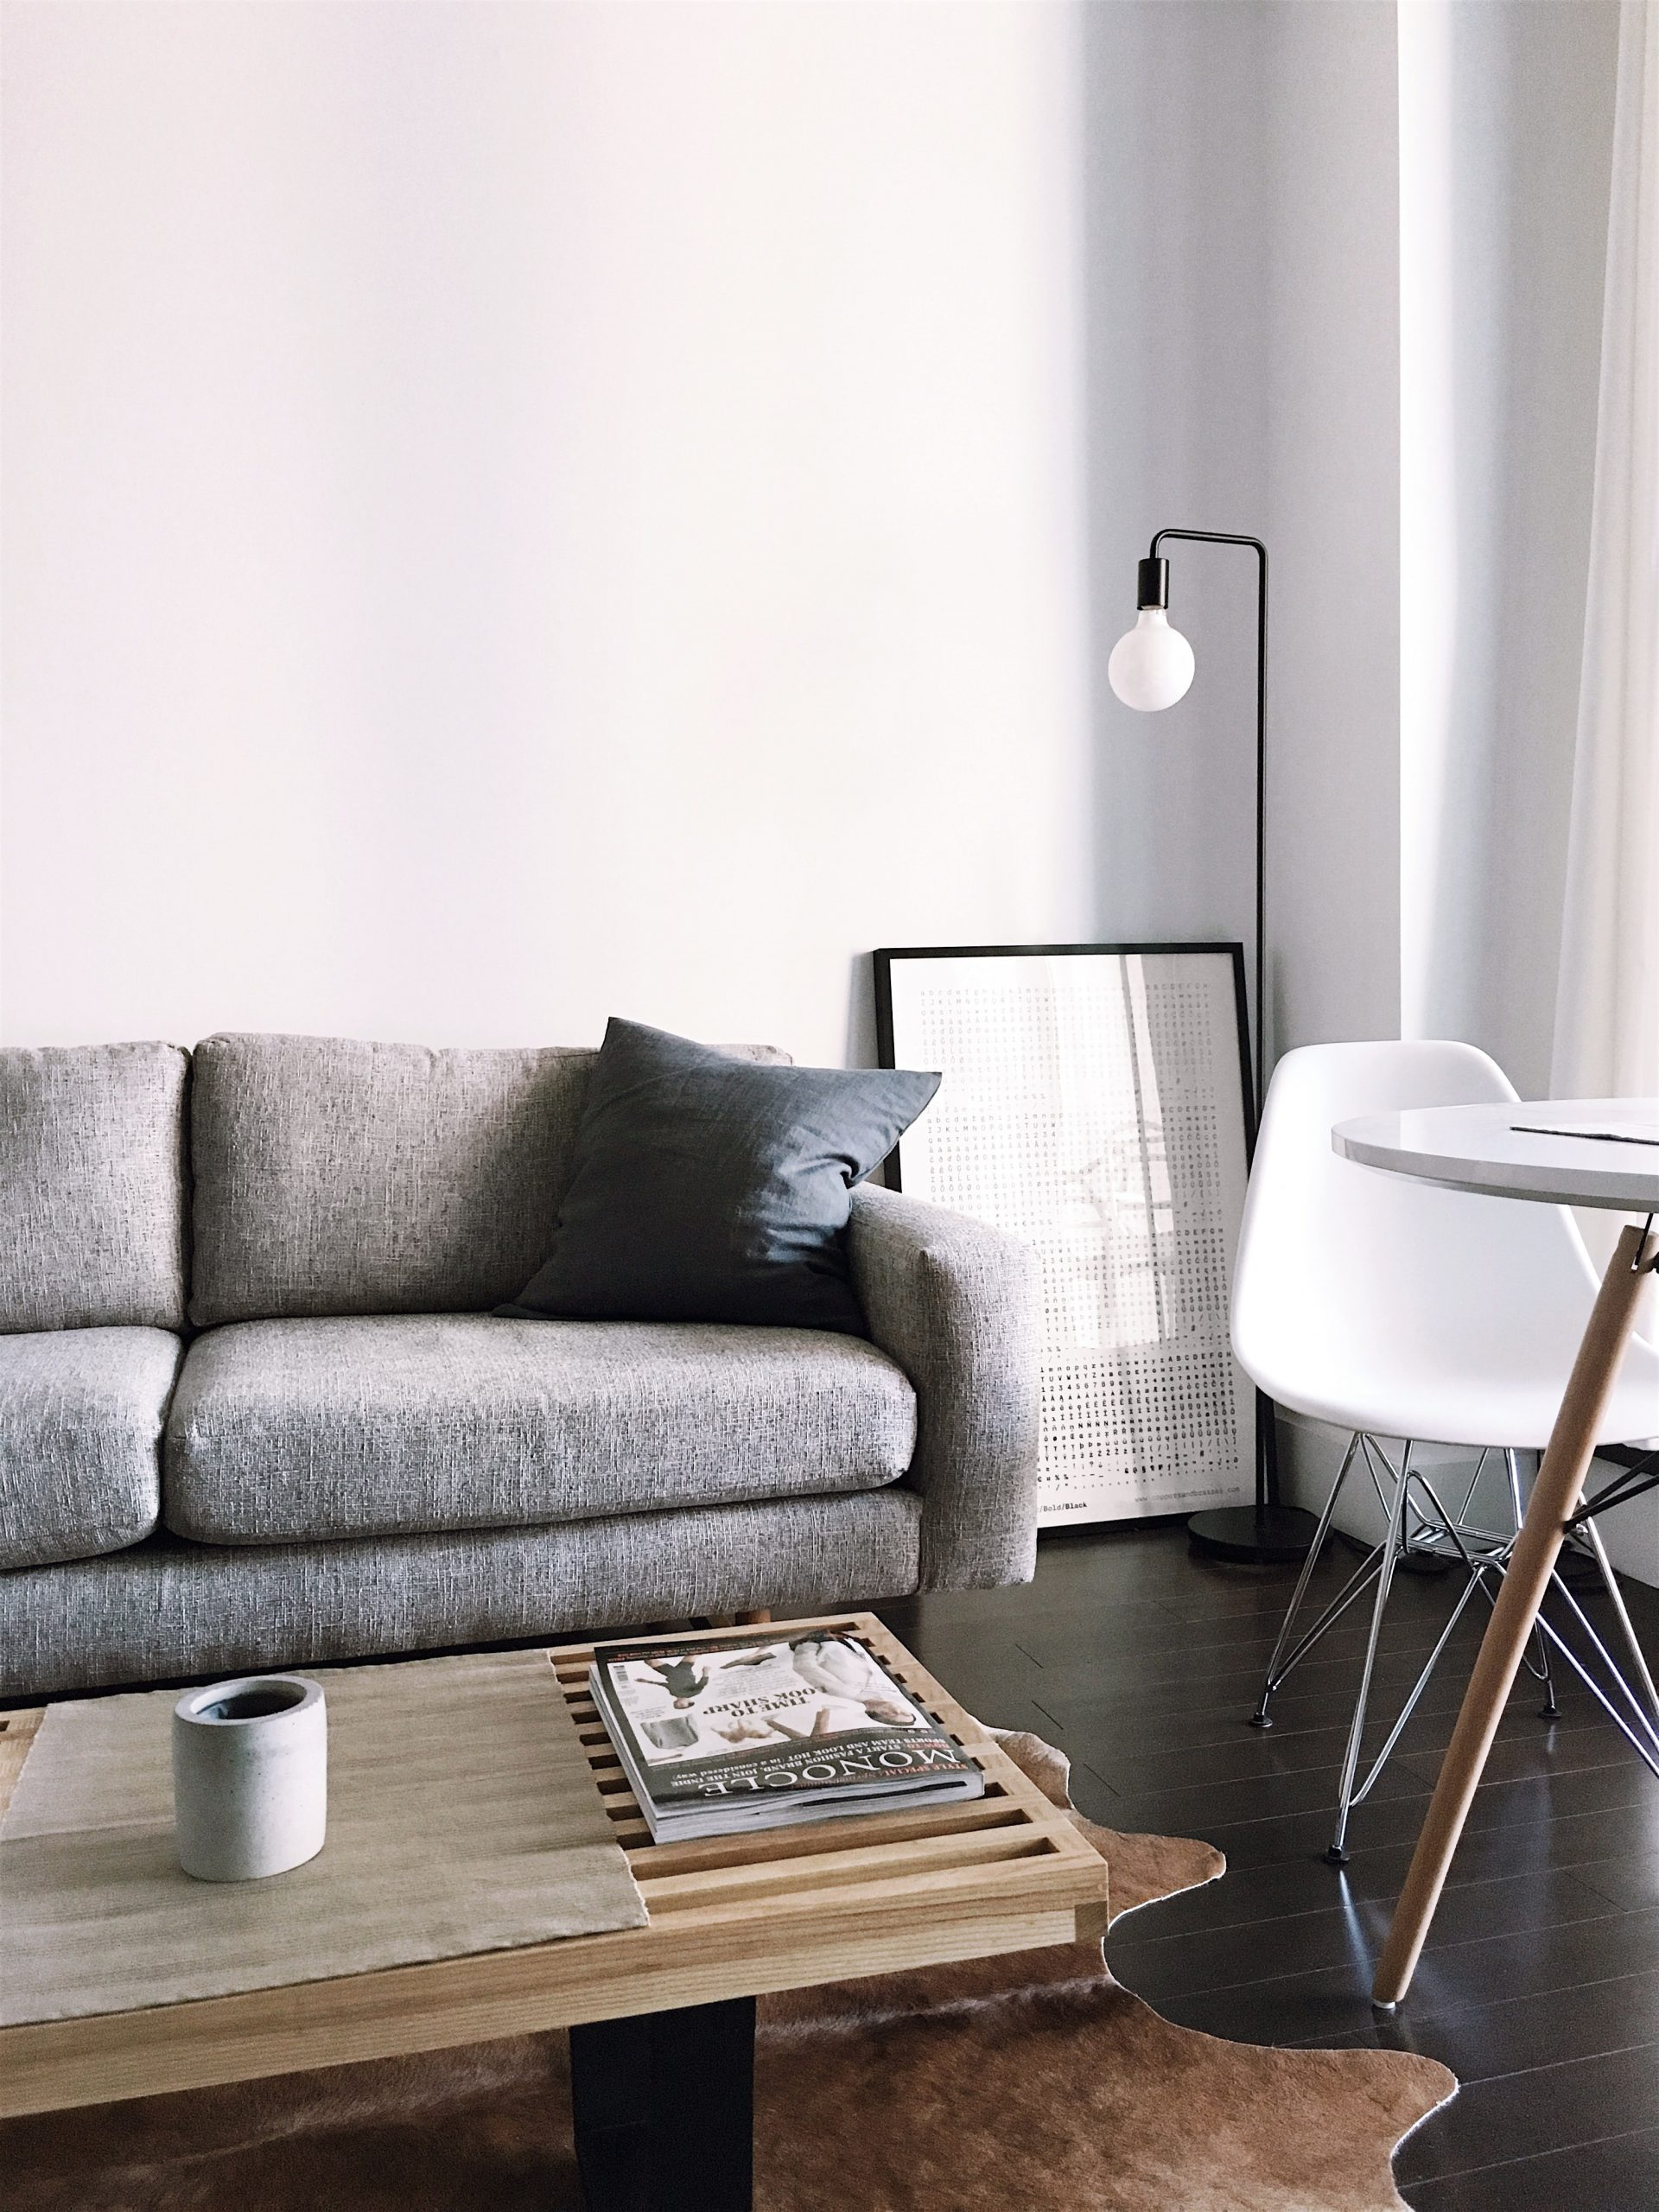 Create The Perfect Scandinavian Home Decor With The Best 2020 Trends!